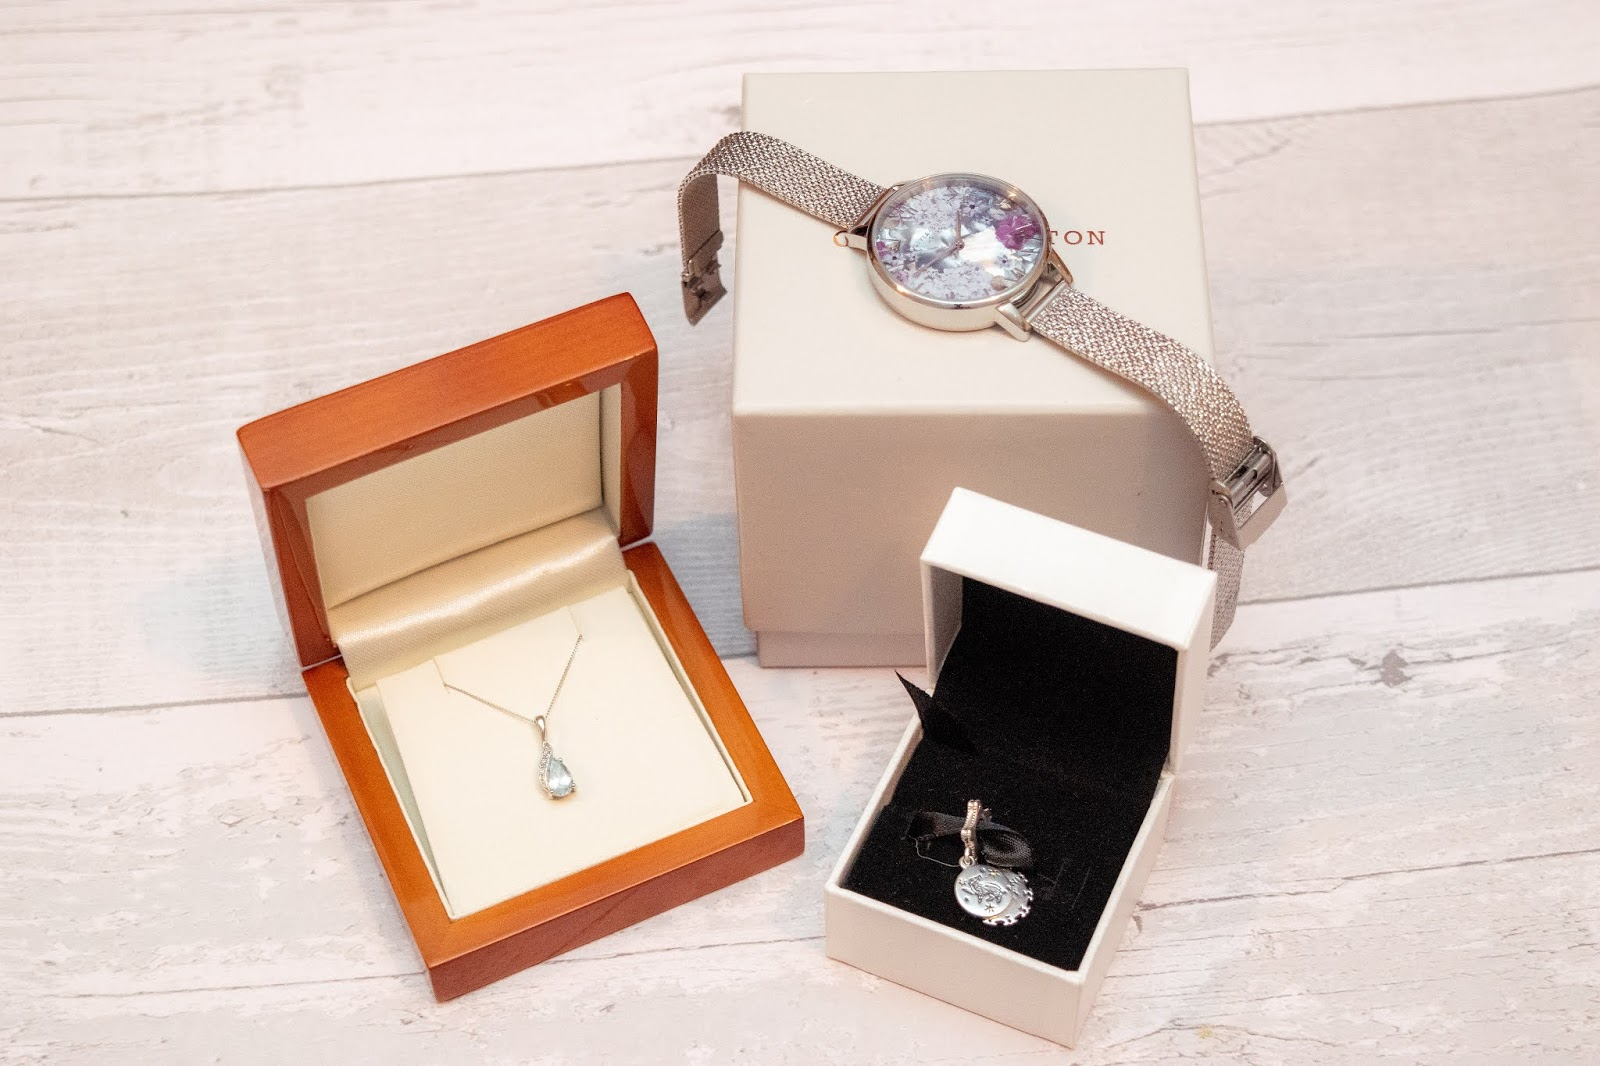 Jewellery gifts gathered together: a necklace, watch and charm.